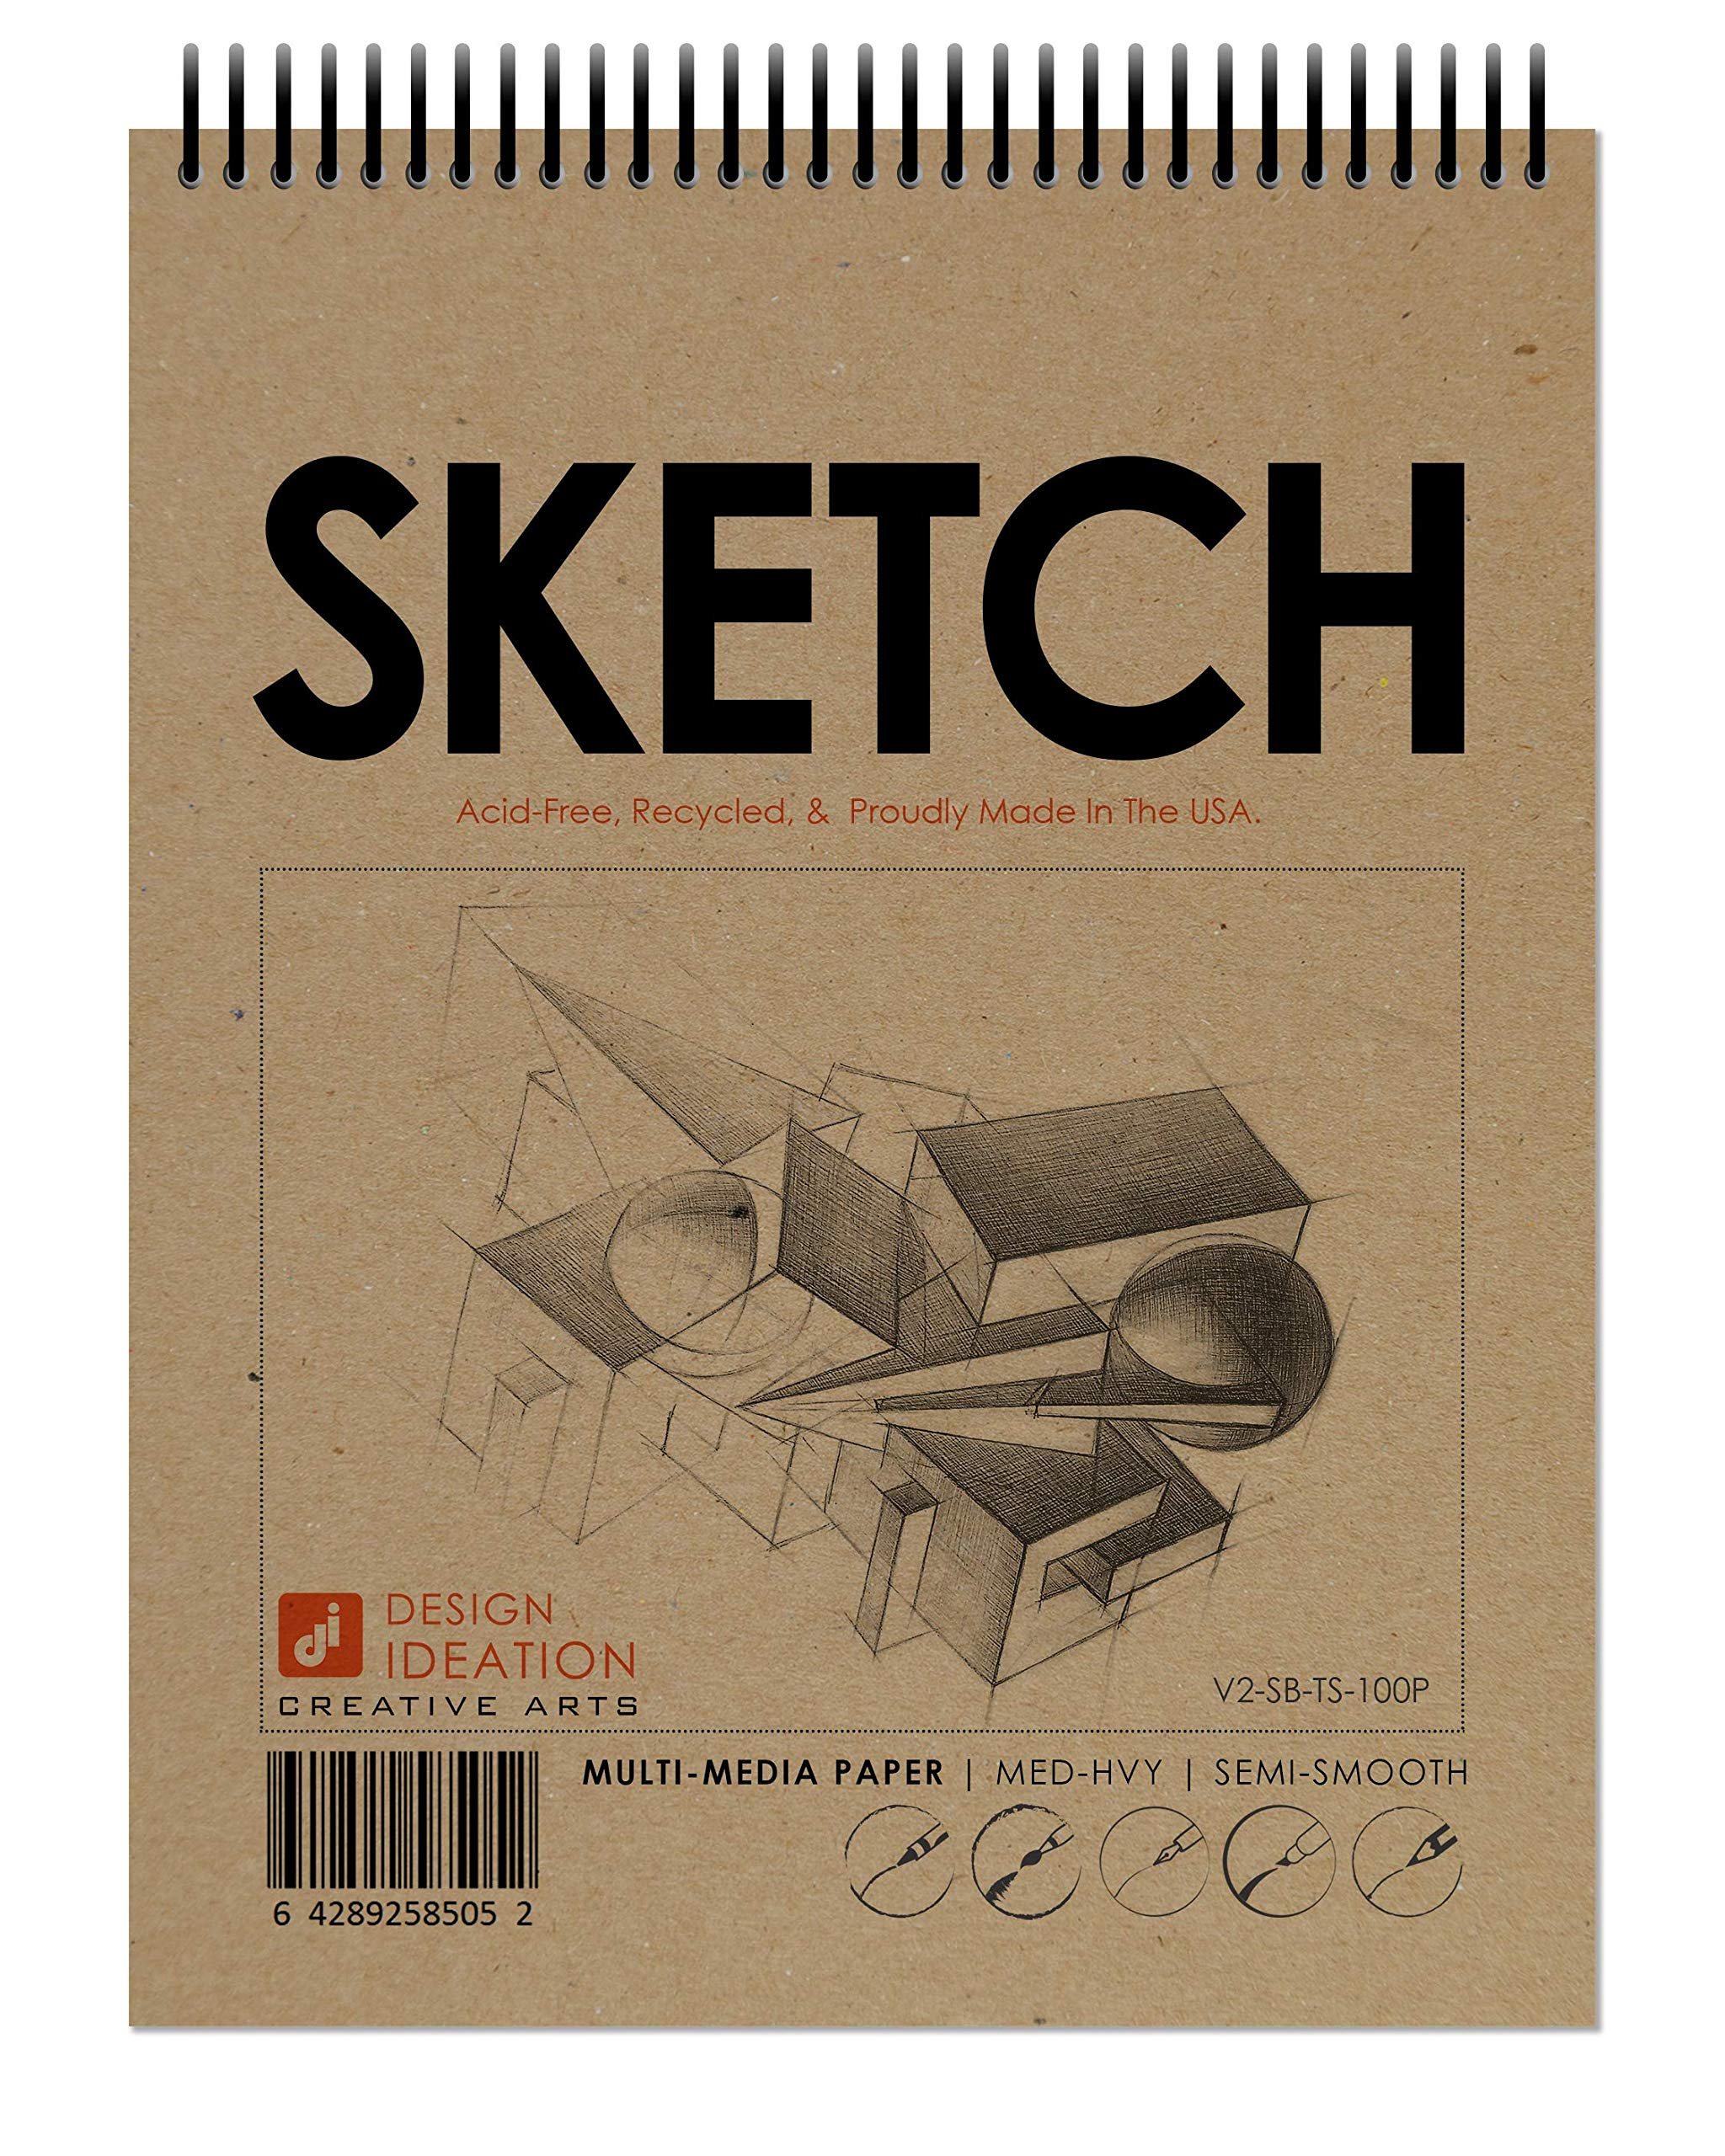 Design Ideation Sketch Book. Spiral Bound, Multi-Media Paper Sketchbook for Pencil, Ink, Marker, Charcoal and Watercolor Paints. Great for Art, Design and Education. (8.5'' x 11'') (10 Books) by Design Ideation